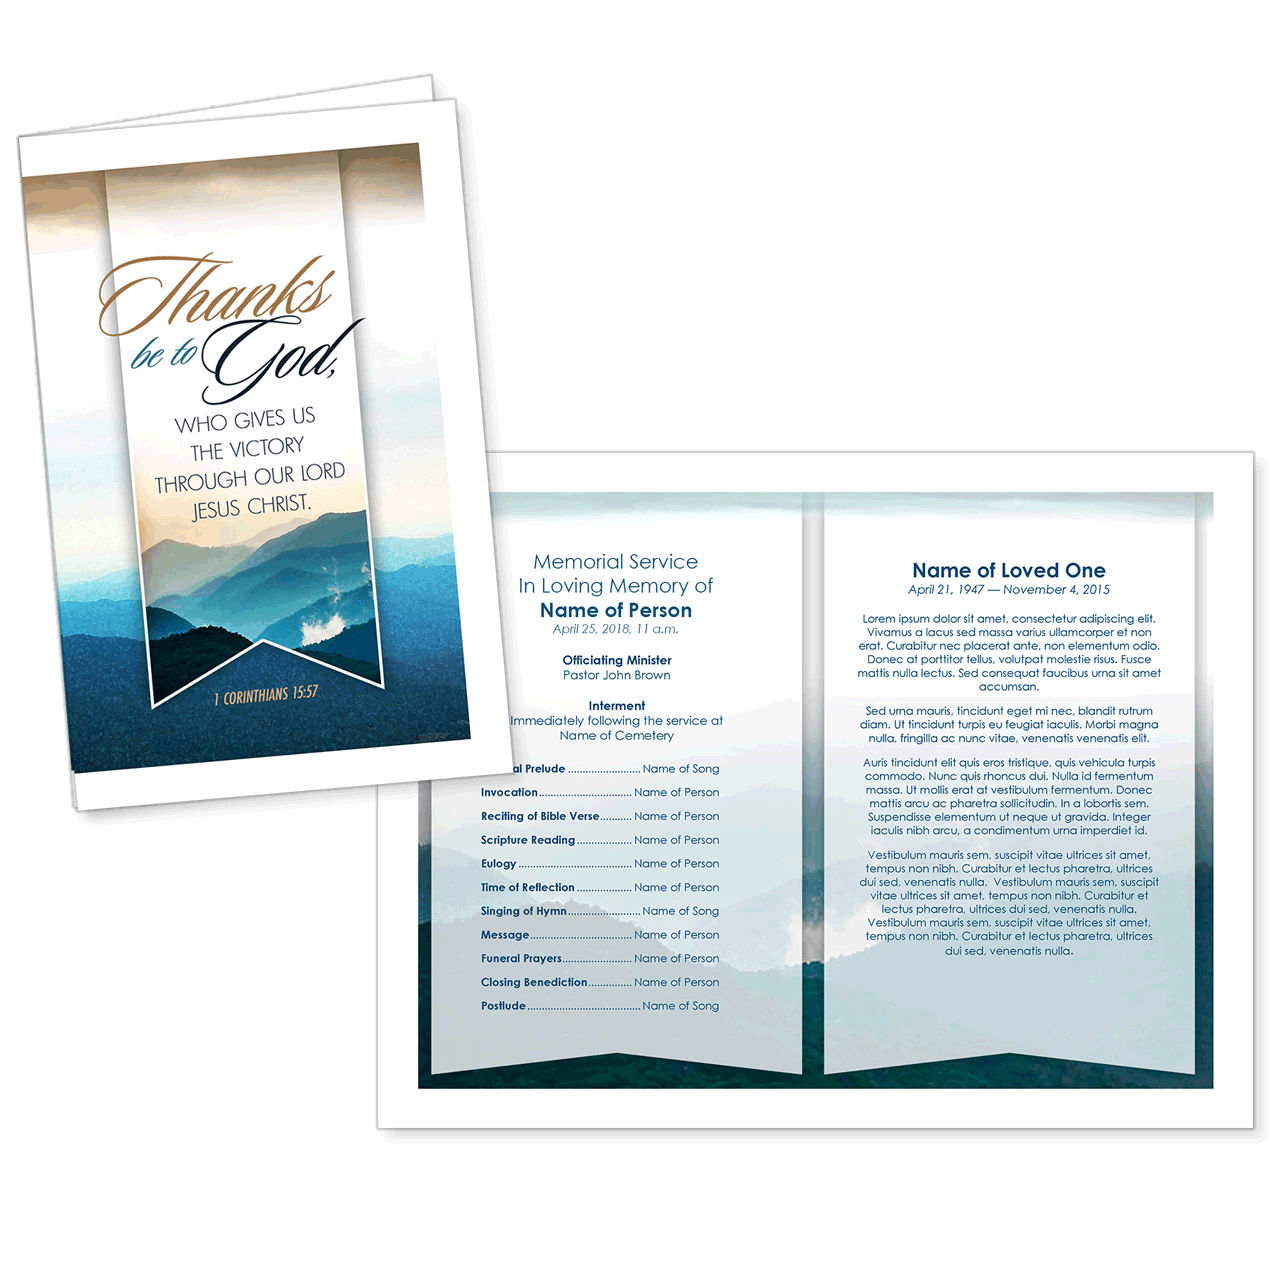 Premium Church Templates for Funeral Programs